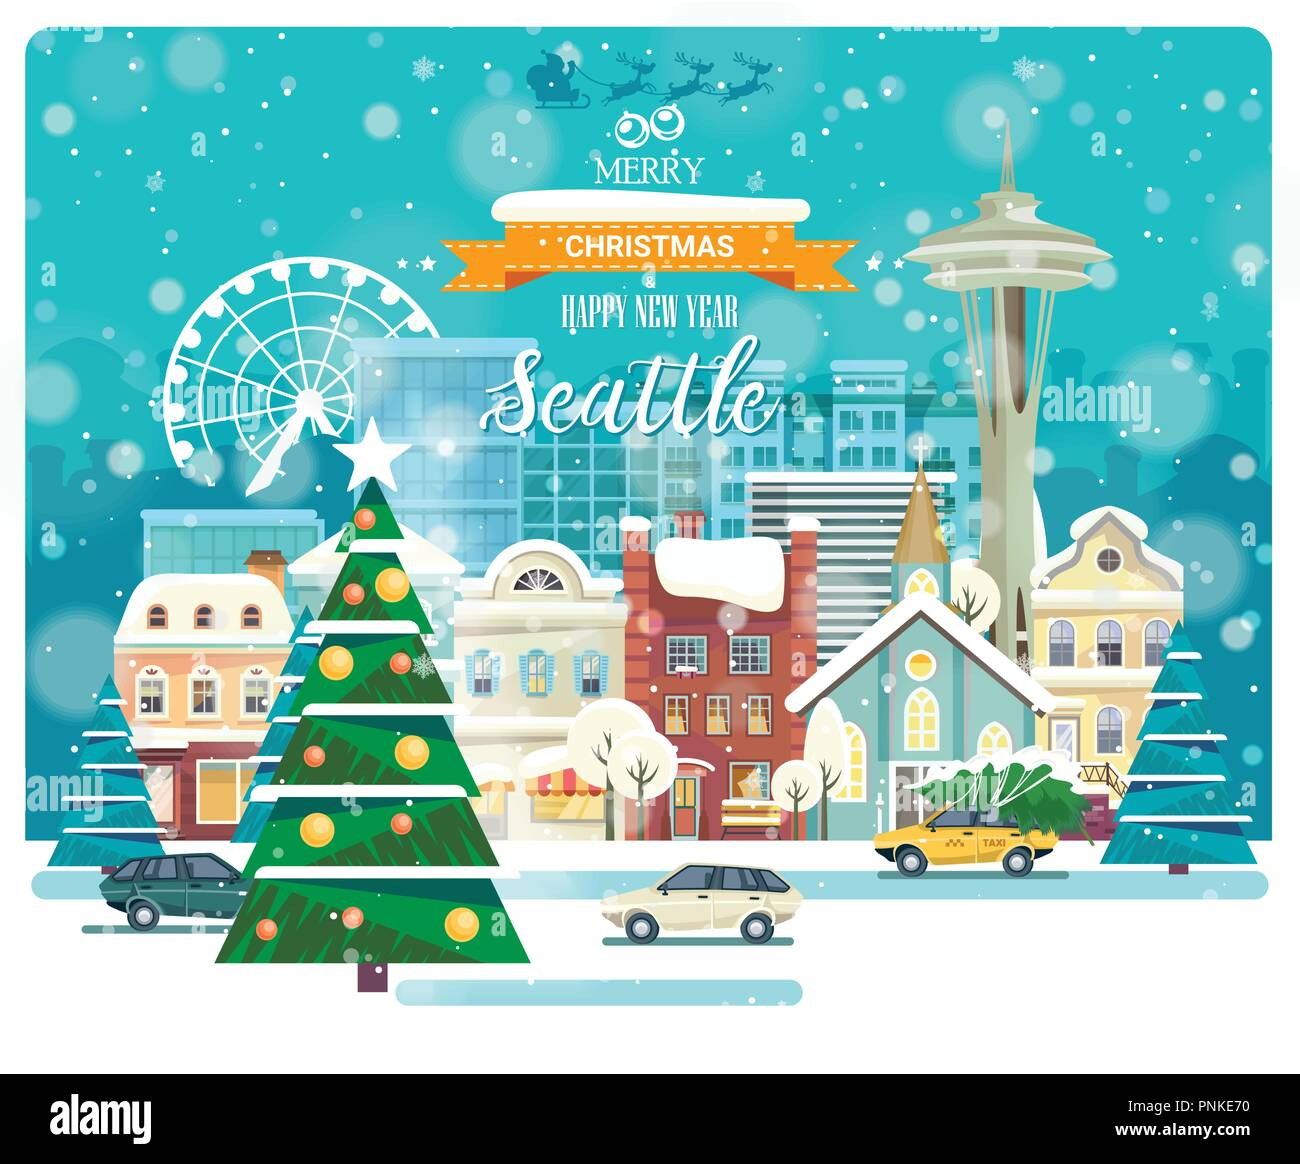 merry christmas and happy new year in seattle greeting festive card from the usa winter snowing city with cute cozy houses and snowflakes